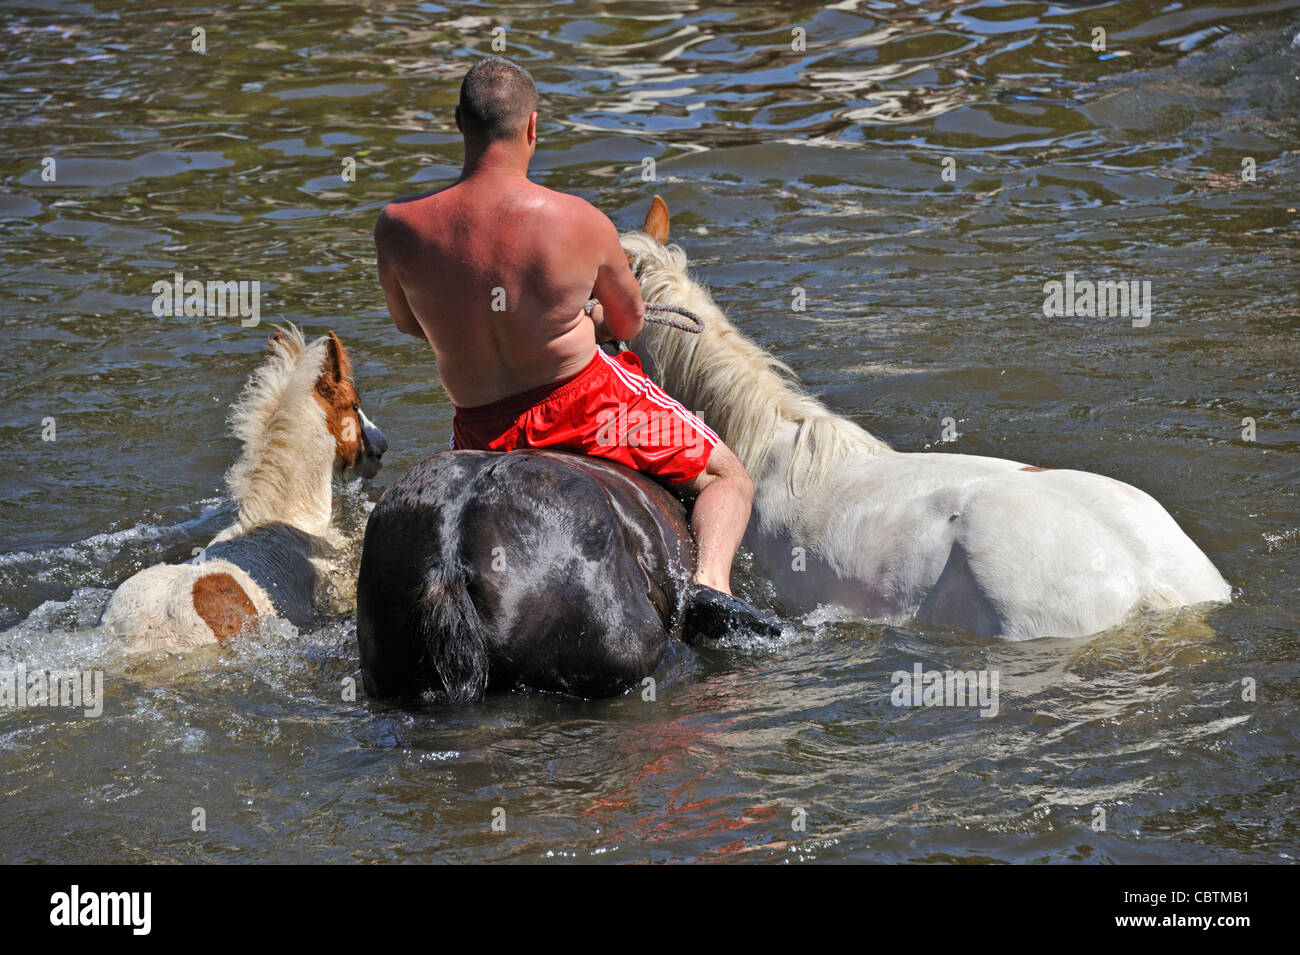 Gypsy traveller with three horses in River Eden. Appleby Horse Fair, Appleby-in-Westmorland, Cumbria, England, United - Stock Image